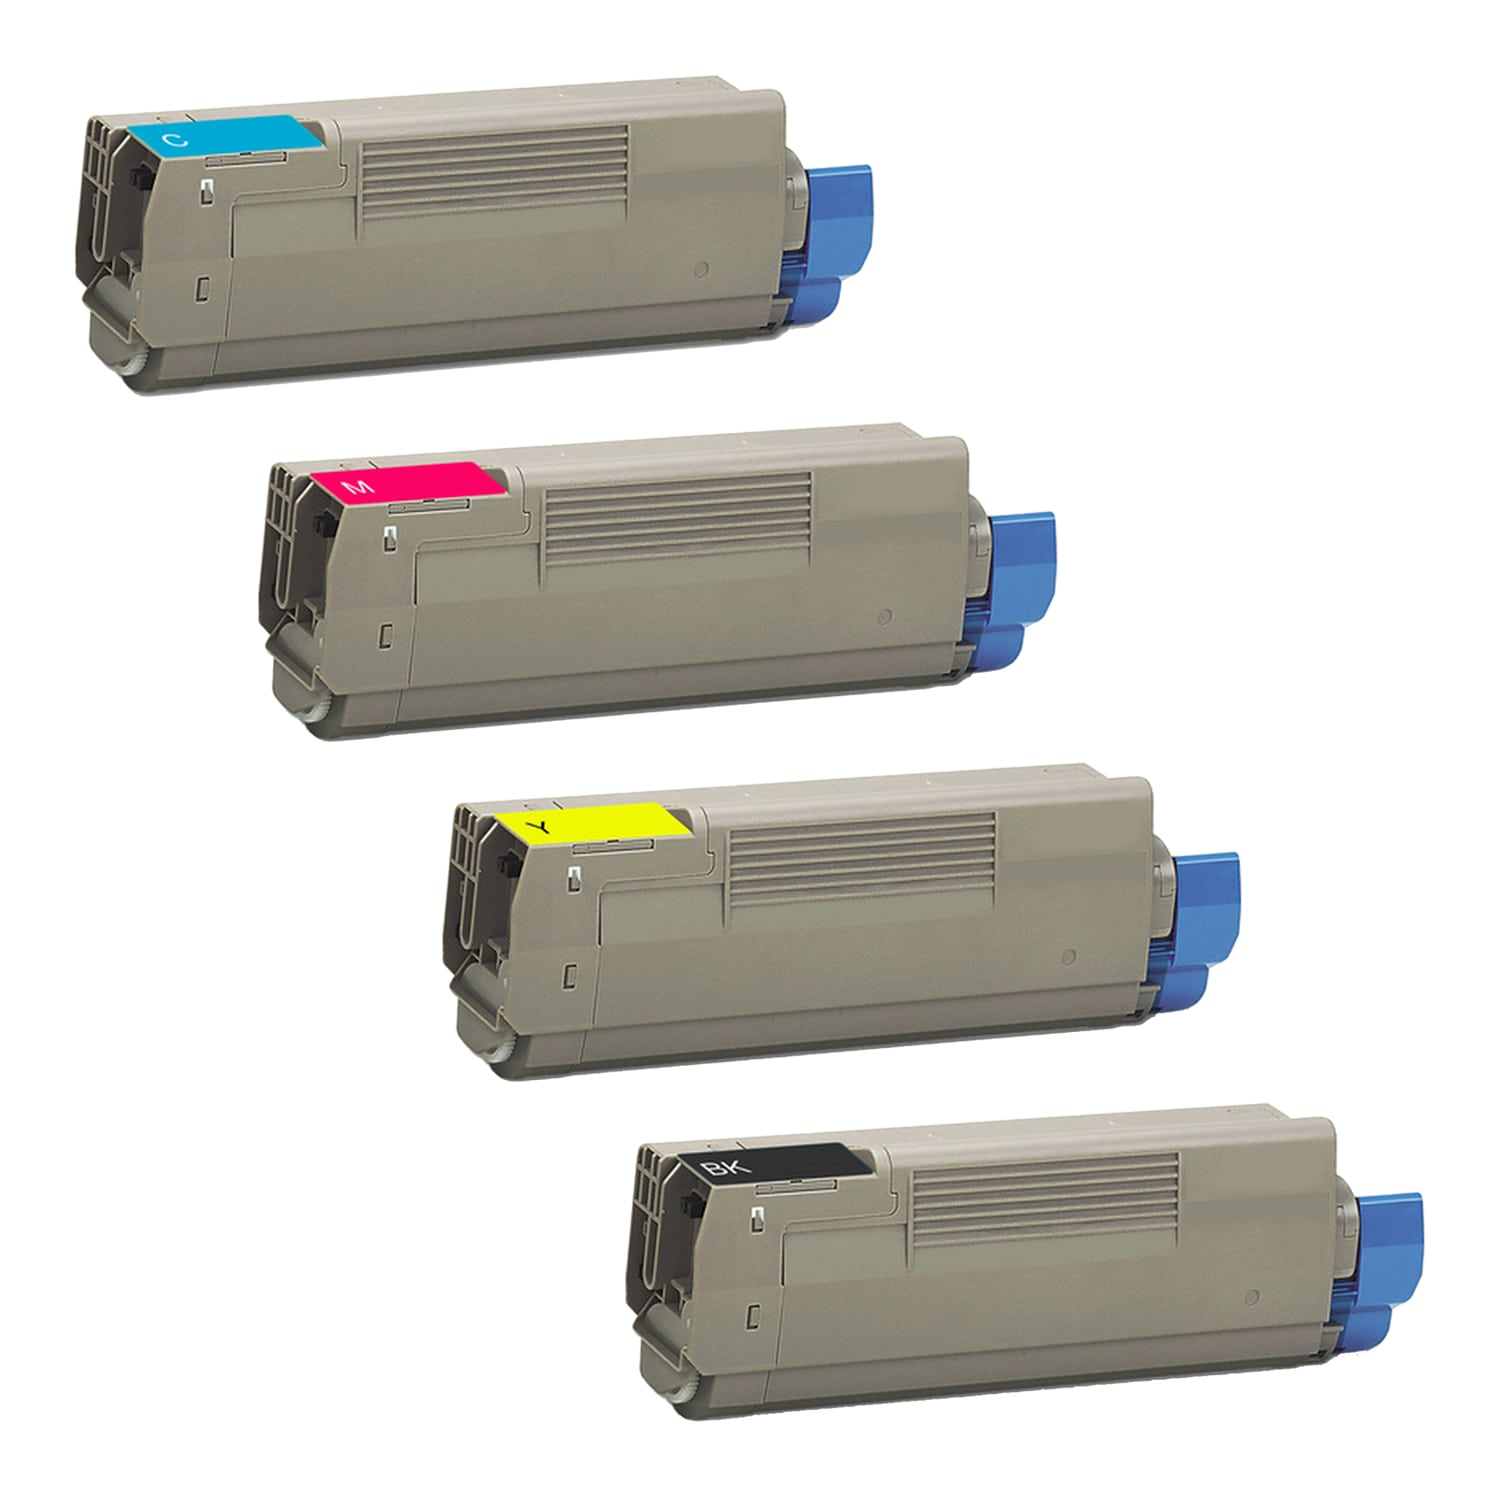 Remanufactured Okidata C710 Toner Pack - 4 Cartridges